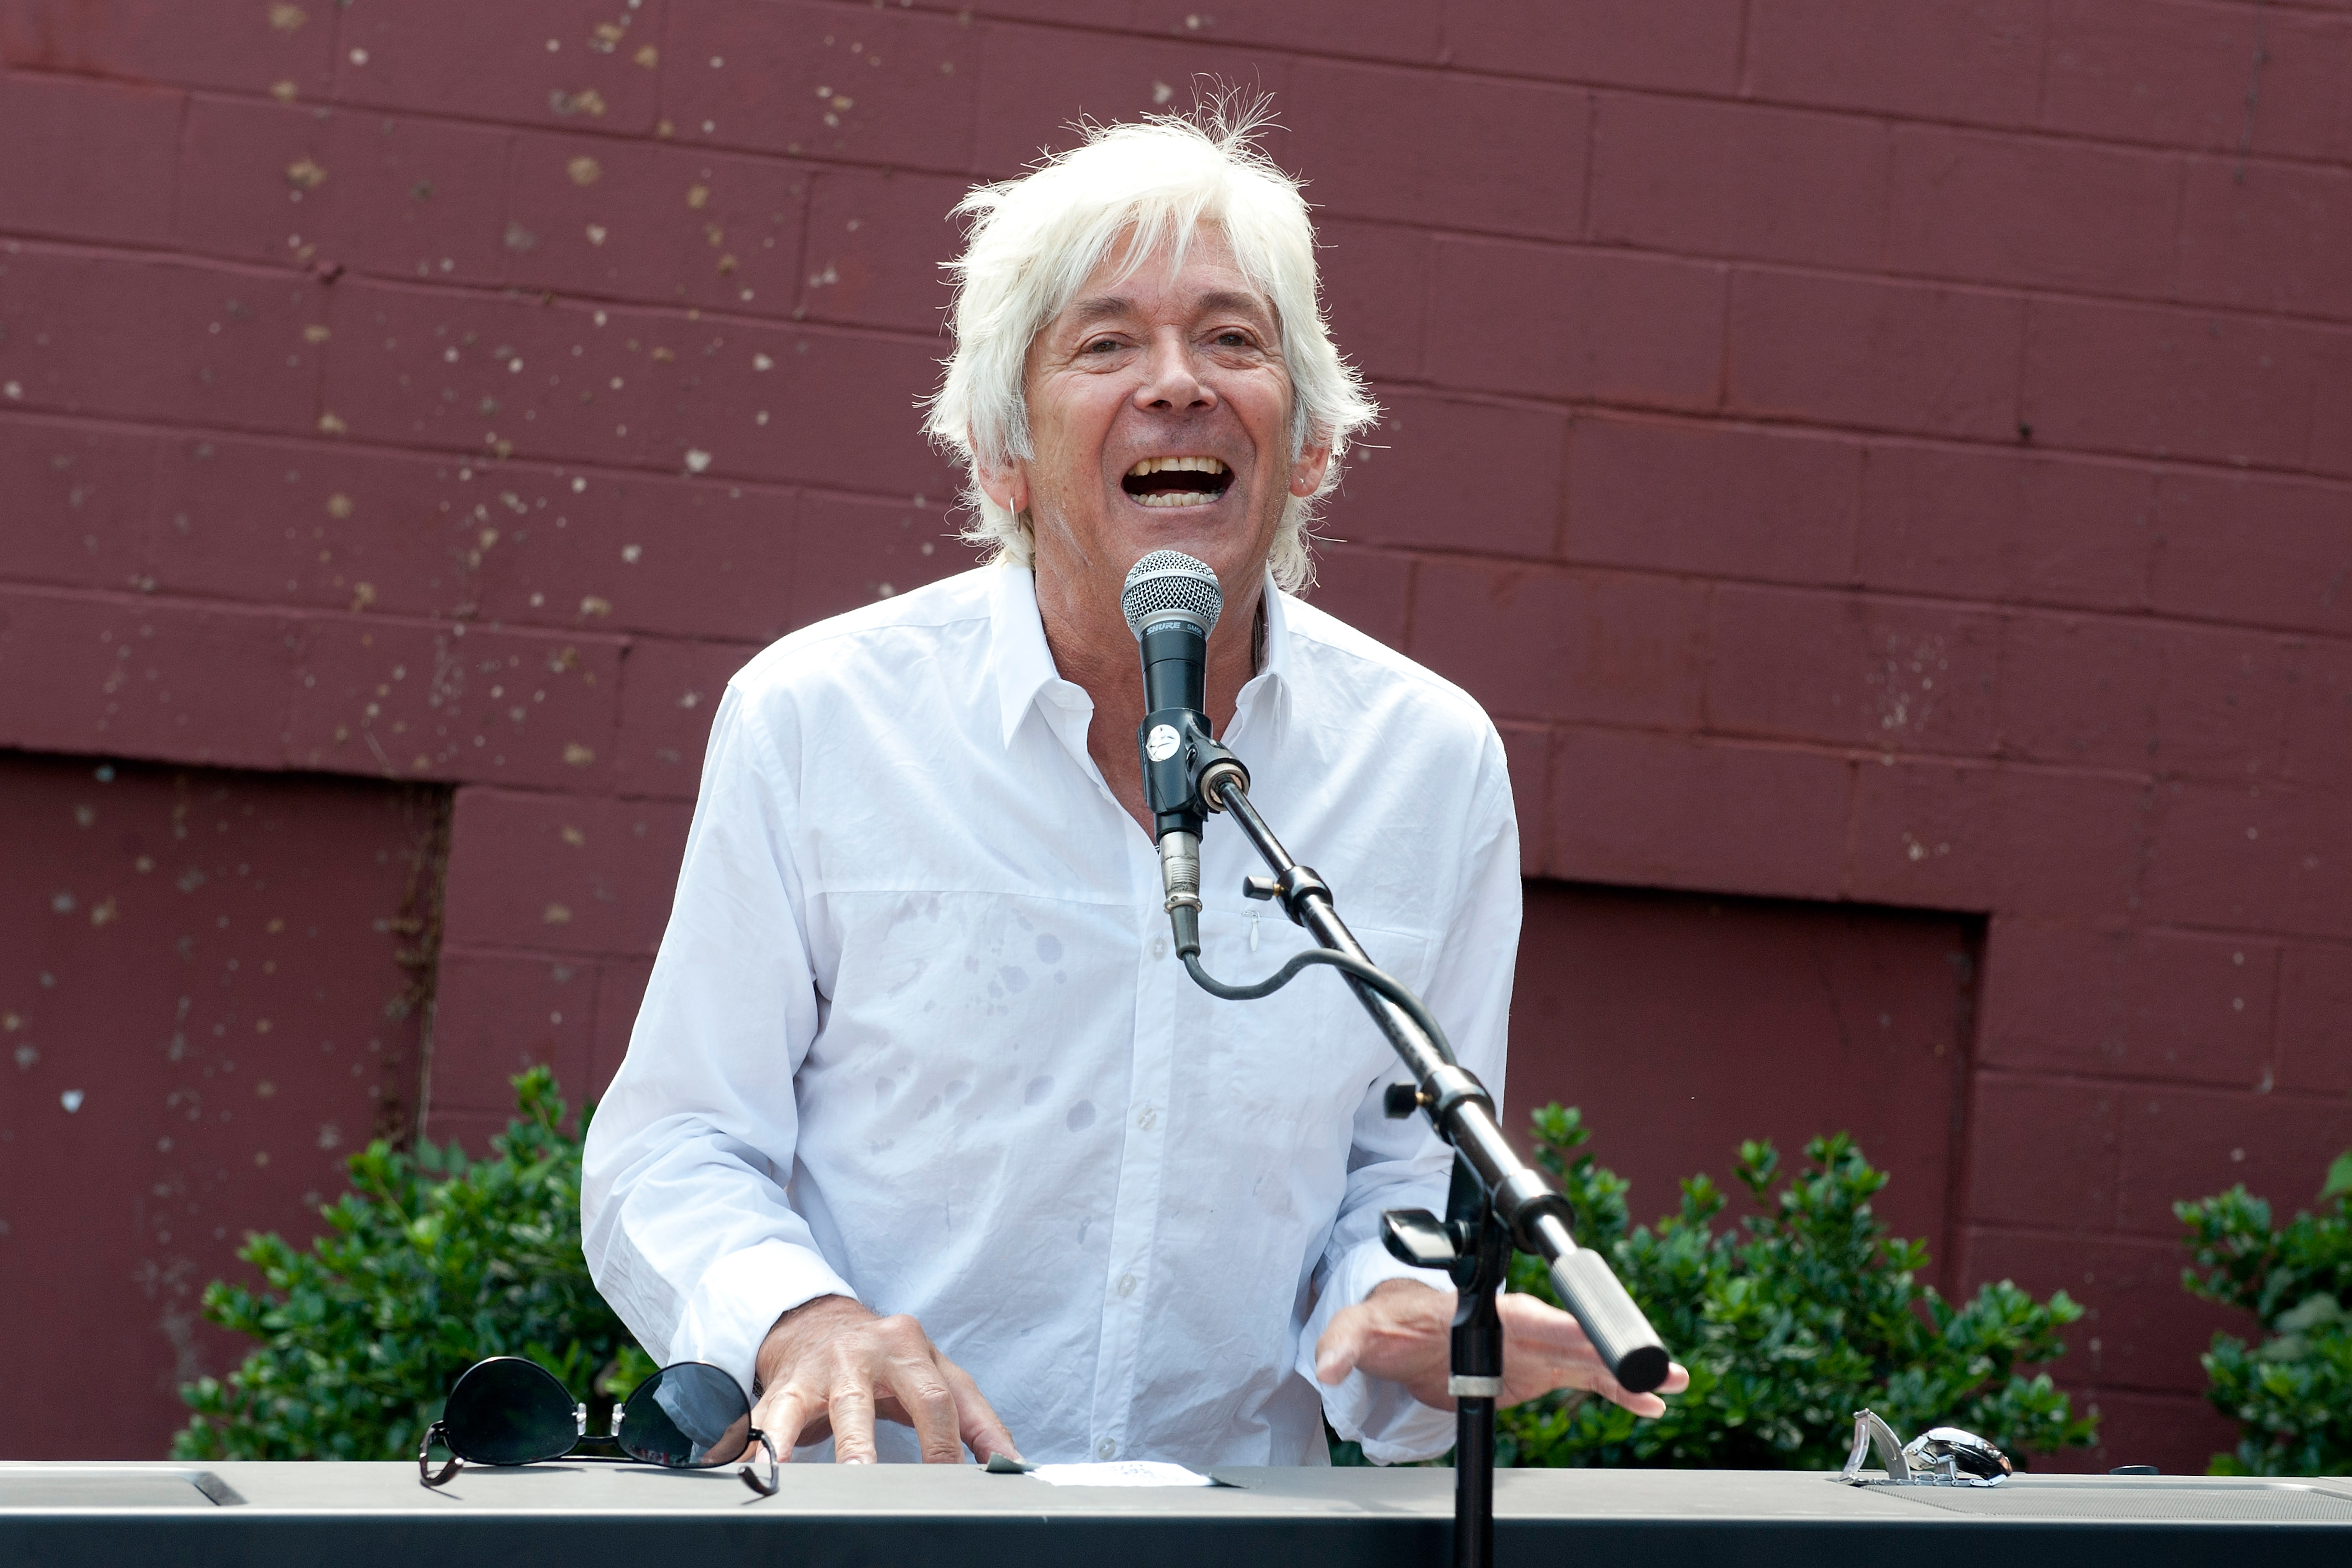 Image Result For Keyboardist Ian Mclagan